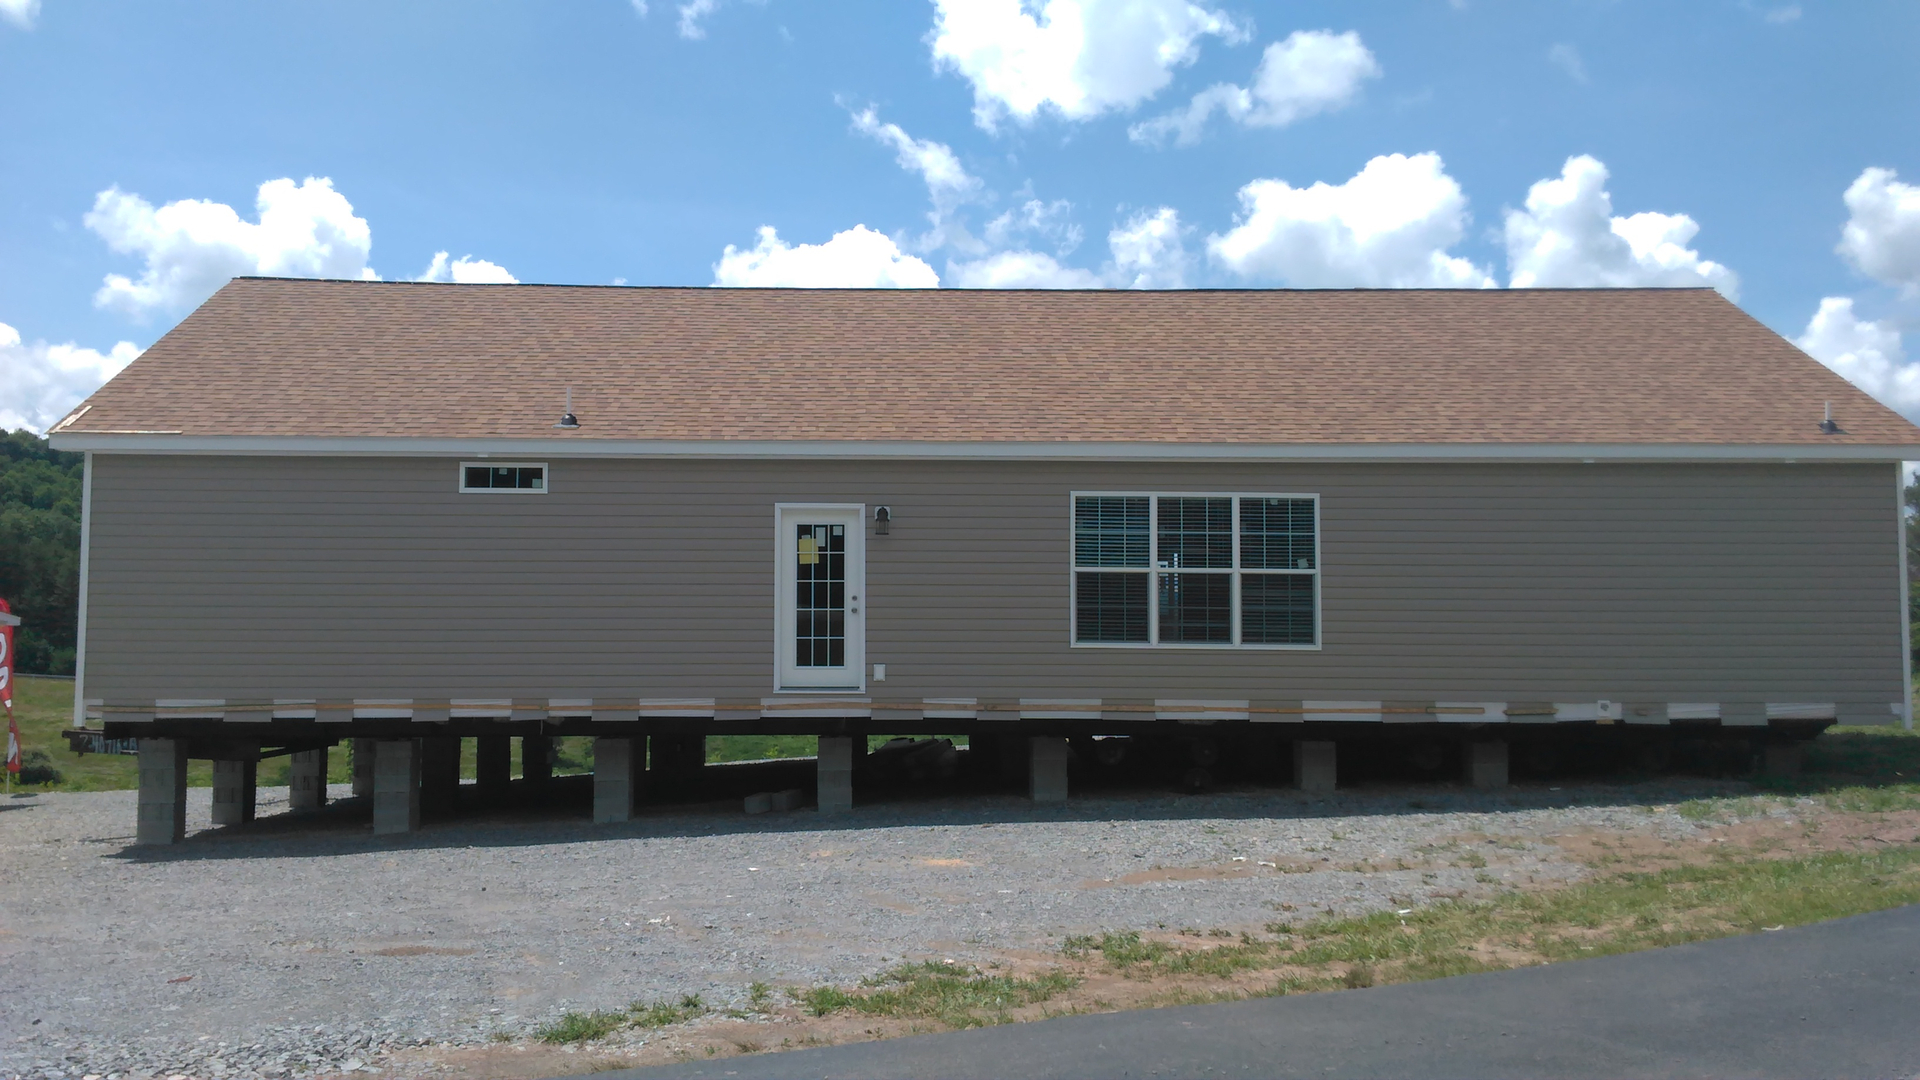 2017 32 X 66 R Anell Modular 3 Bedroom 2 Bathroom 9ft Smooth Ceiling 7 12 Pitch Roof Stainless Steel Appliances 140000